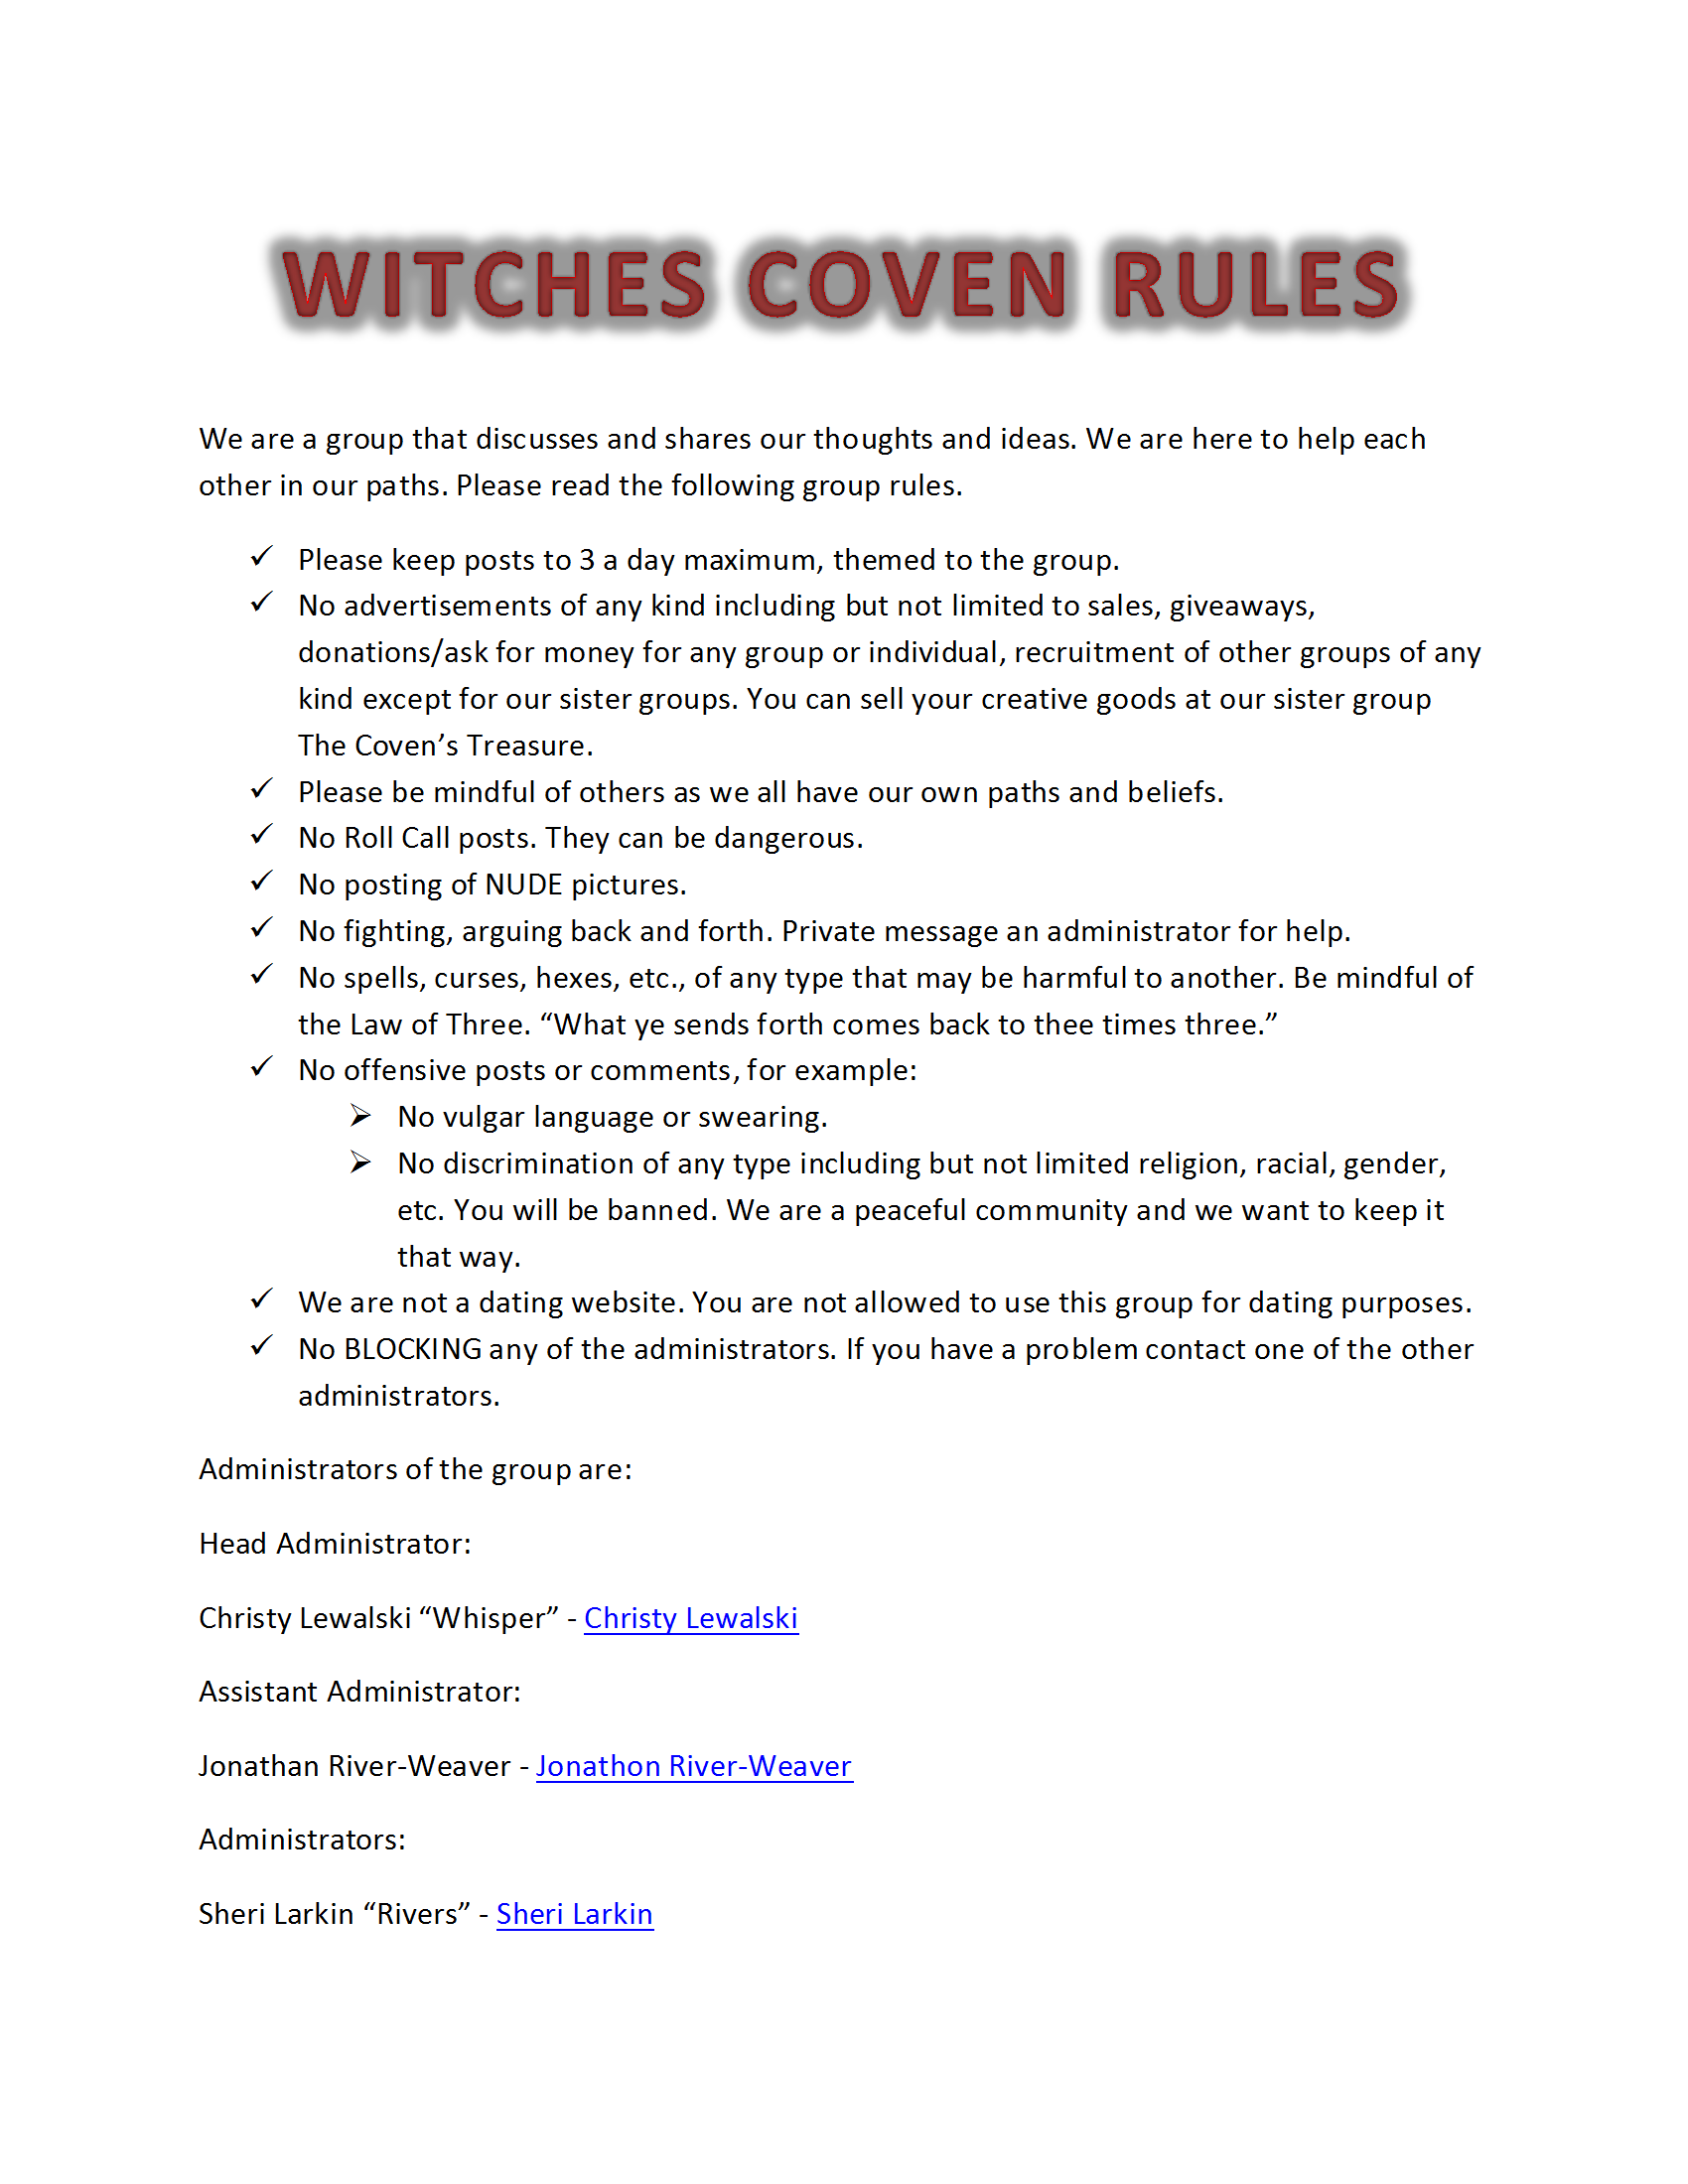 Witches Coven Rules docx | Wicca | Witch coven, Wicca, Coven